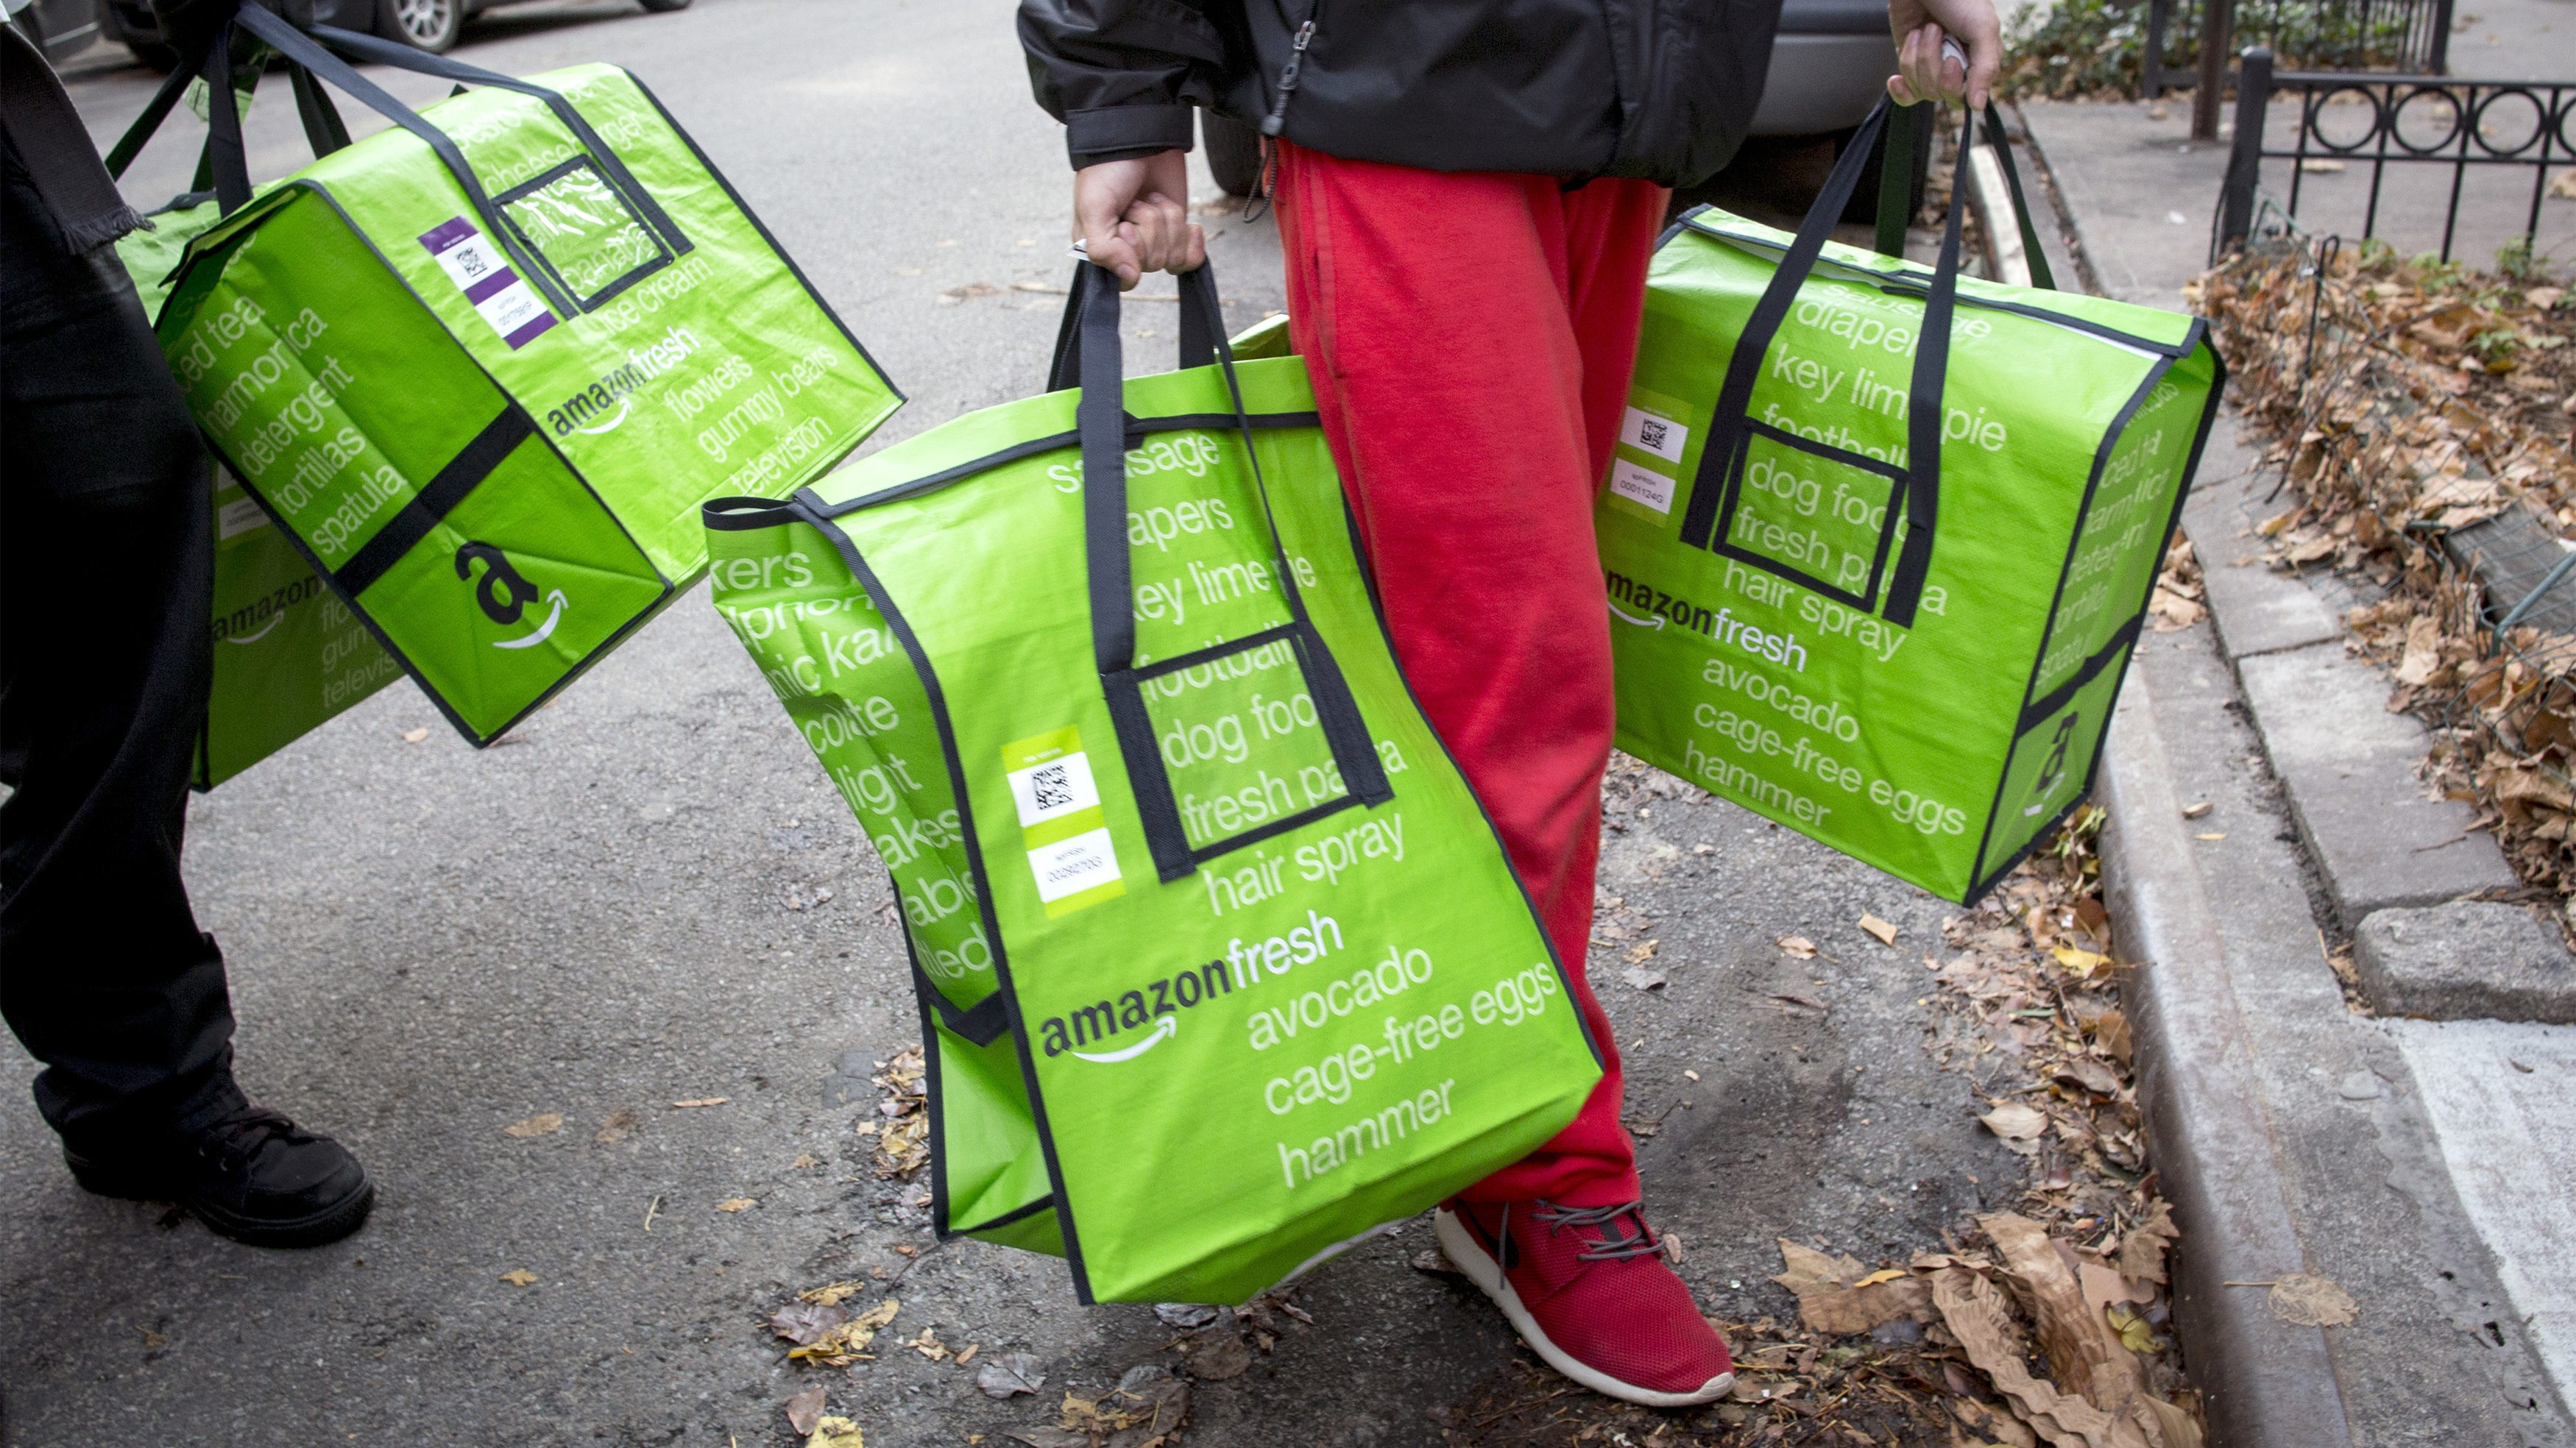 Amazon workers deliver groceries from the Amazon Fresh service in the Brooklyn Borough of New York, November 25, 2014.  REUTERS/Brendan McDermid (UNITED STATES - Tags: BUSINESS SCIENCE TECHNOLOGY) - RTR4FM6Z